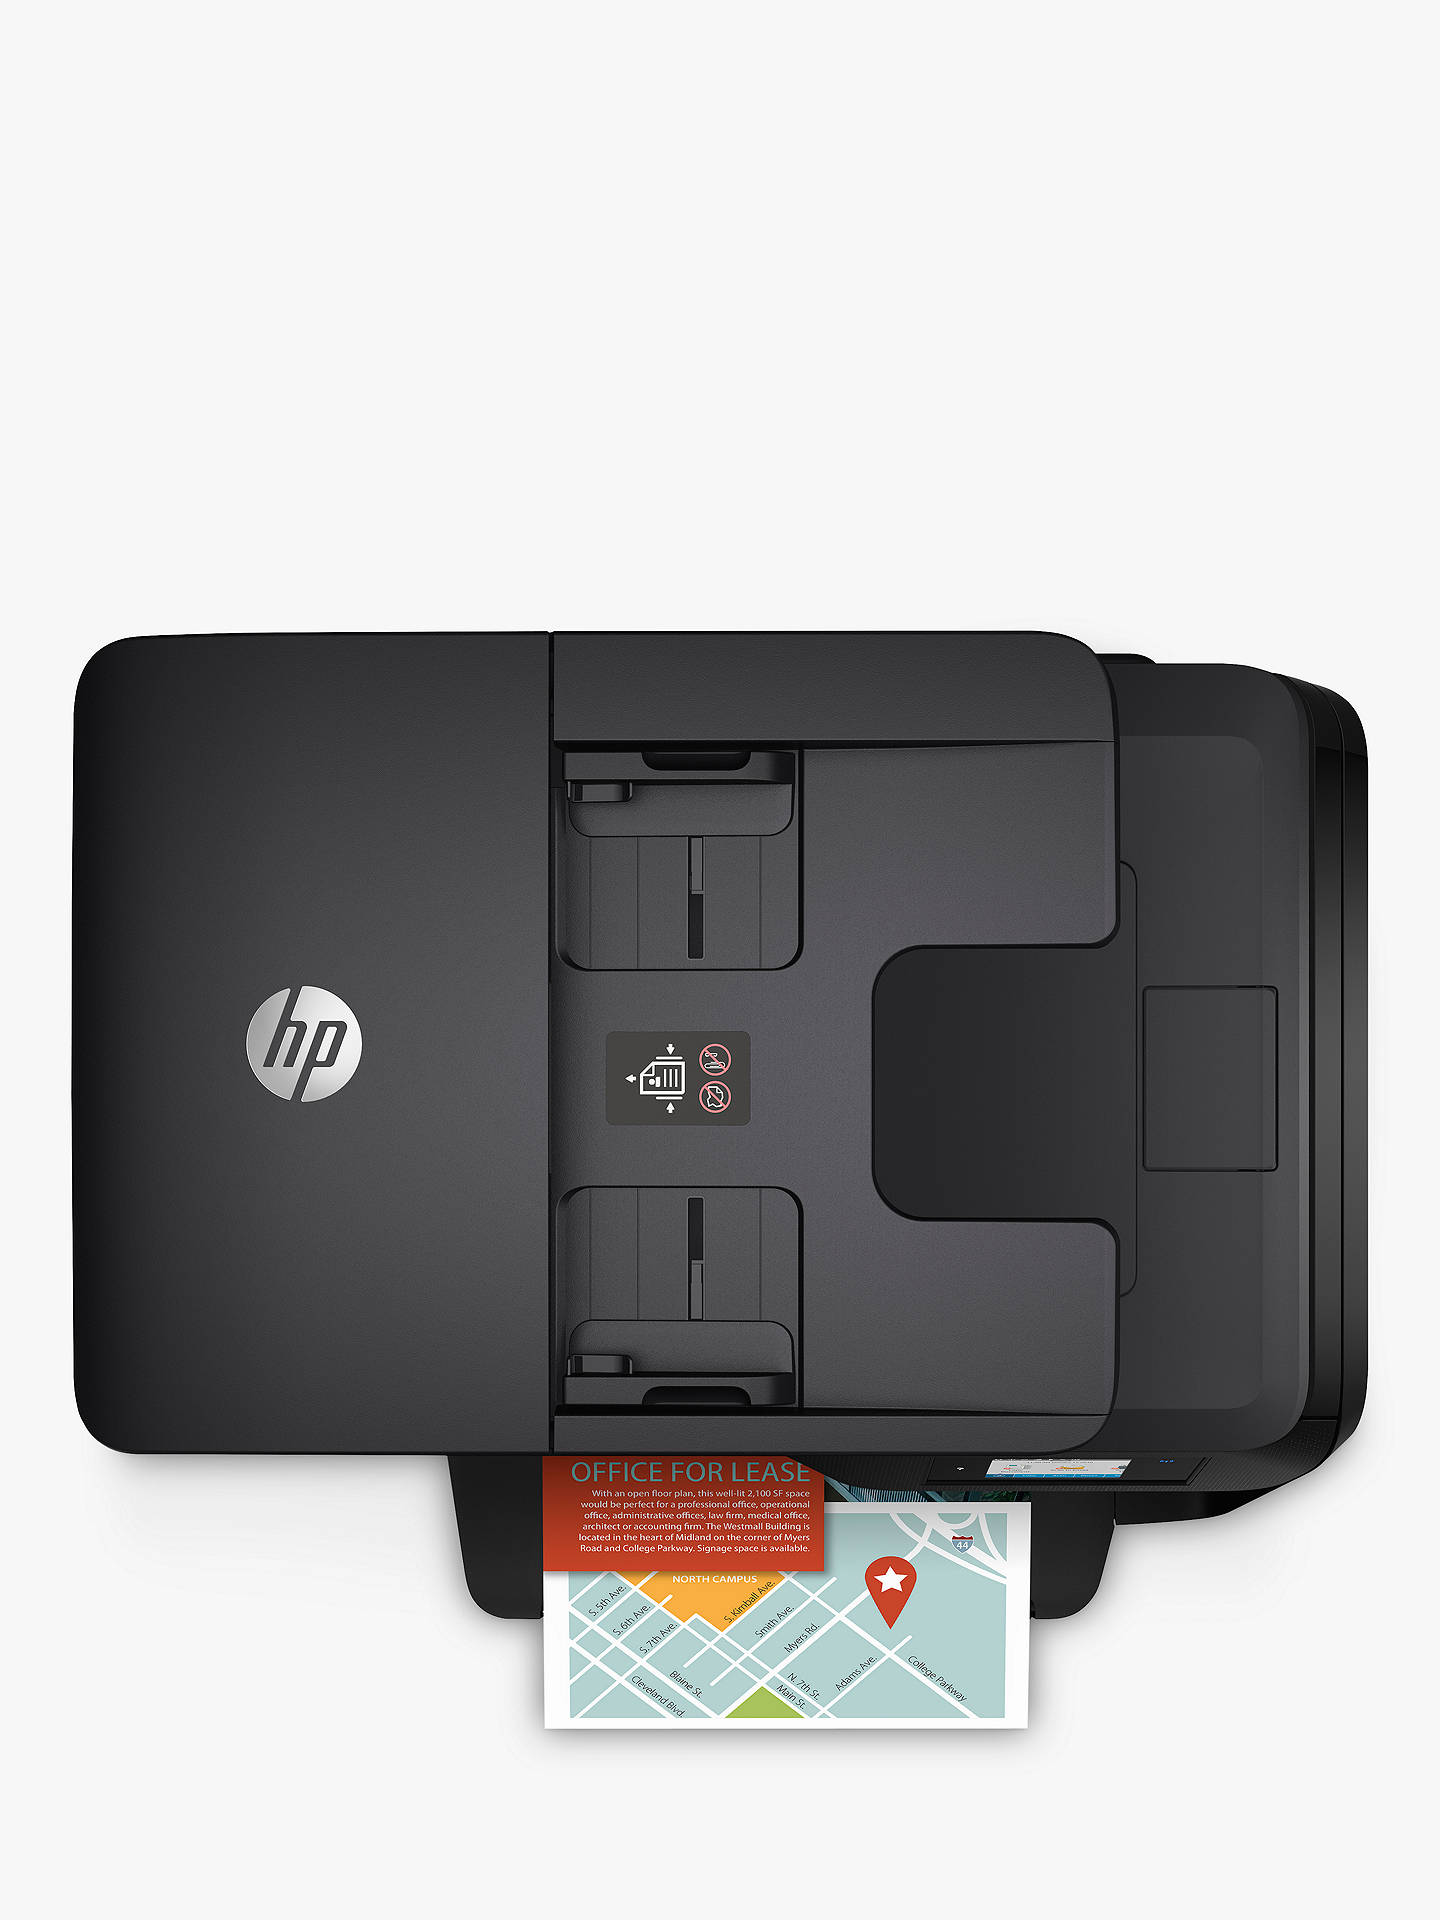 HP OfficeJet Pro 8715 All-in-One Wireless Printer & Fax Machine with Touch  Screen, HP Instant Ink Compatible with 3 Months Trial